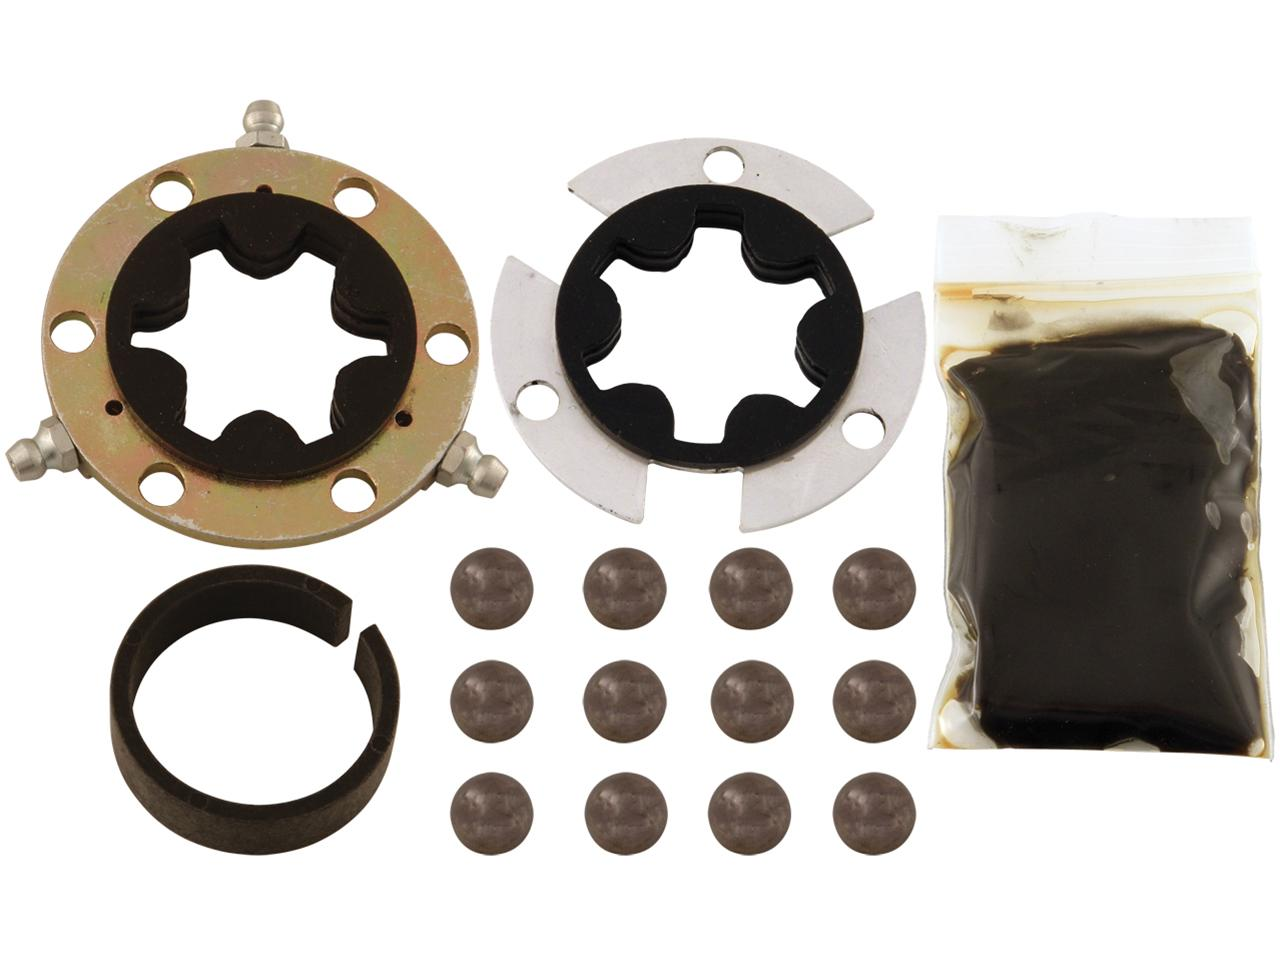 Picture of Bert Ball Spline Overhaul Kit - Double Seal w/ Zerks